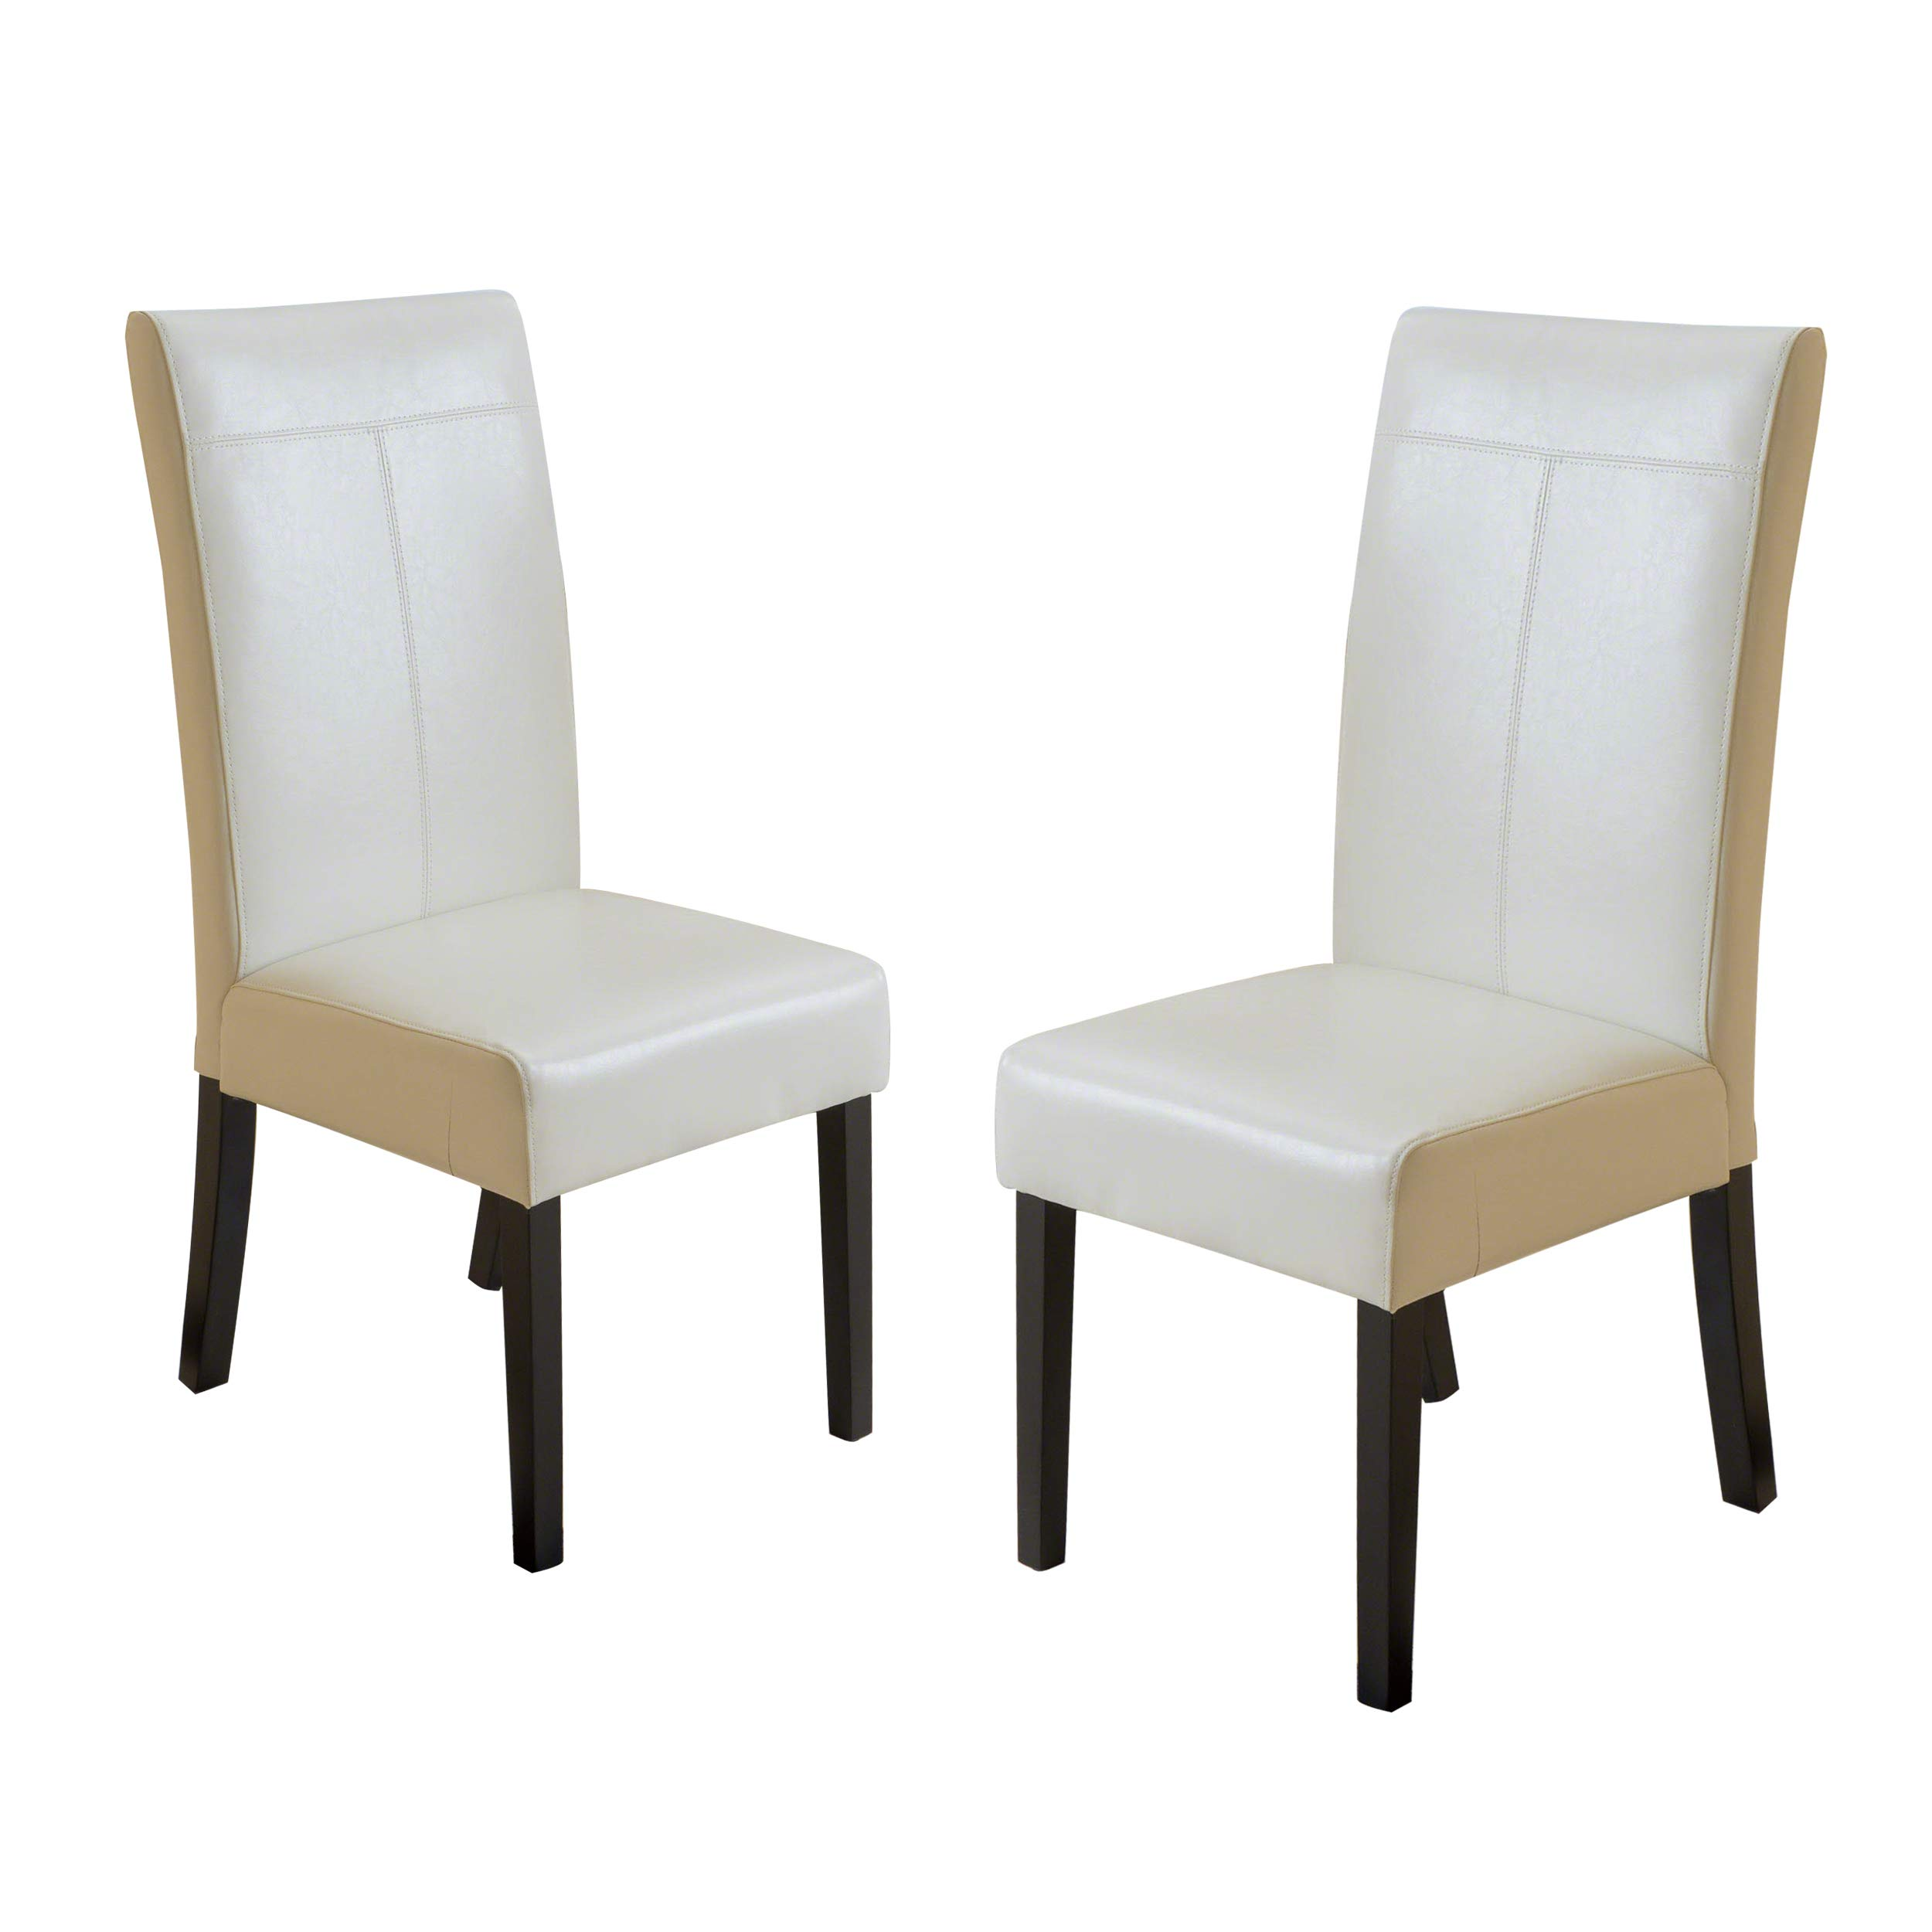 Set of 2 K LIVING DC-025 Beige Fabric Upholstered Dining Chairs